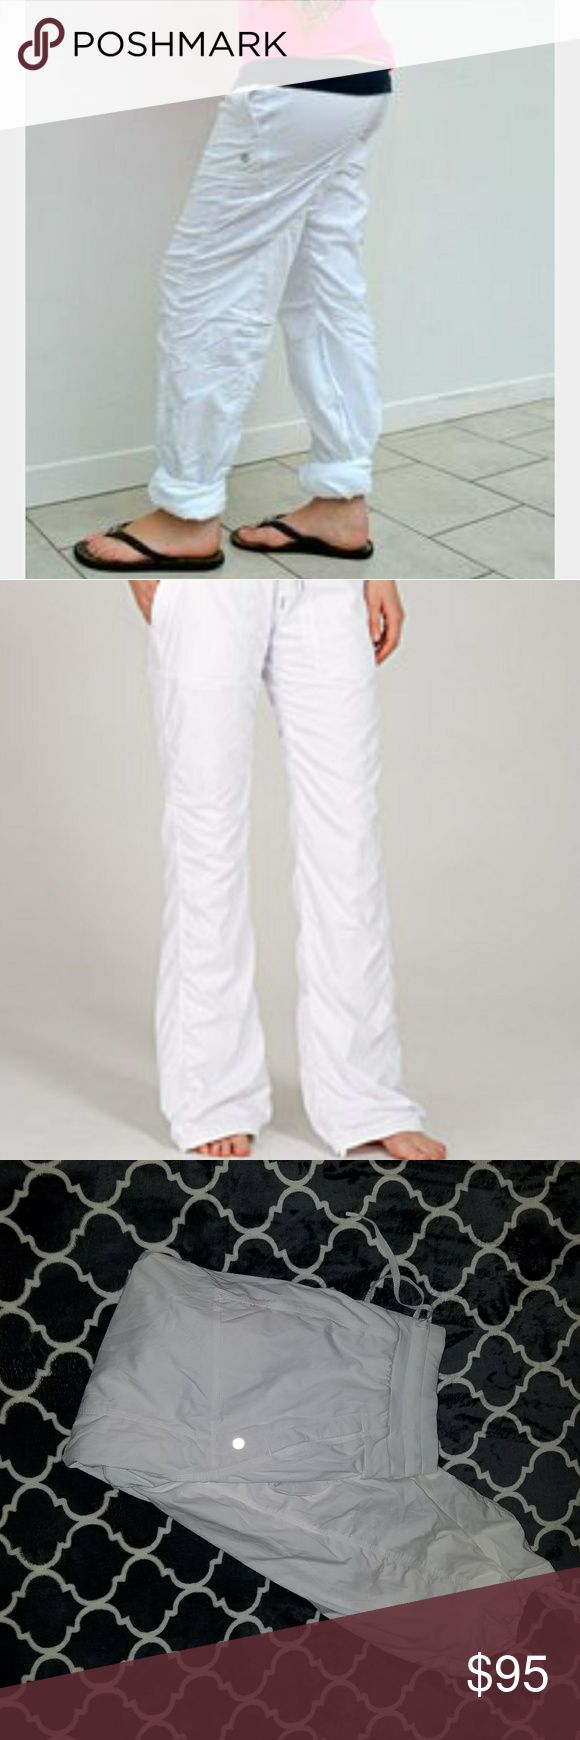 lululemon dance studio pants lined  sz 10 reg white and lined.  no issues rip tag attached. lululemon athletica Pants